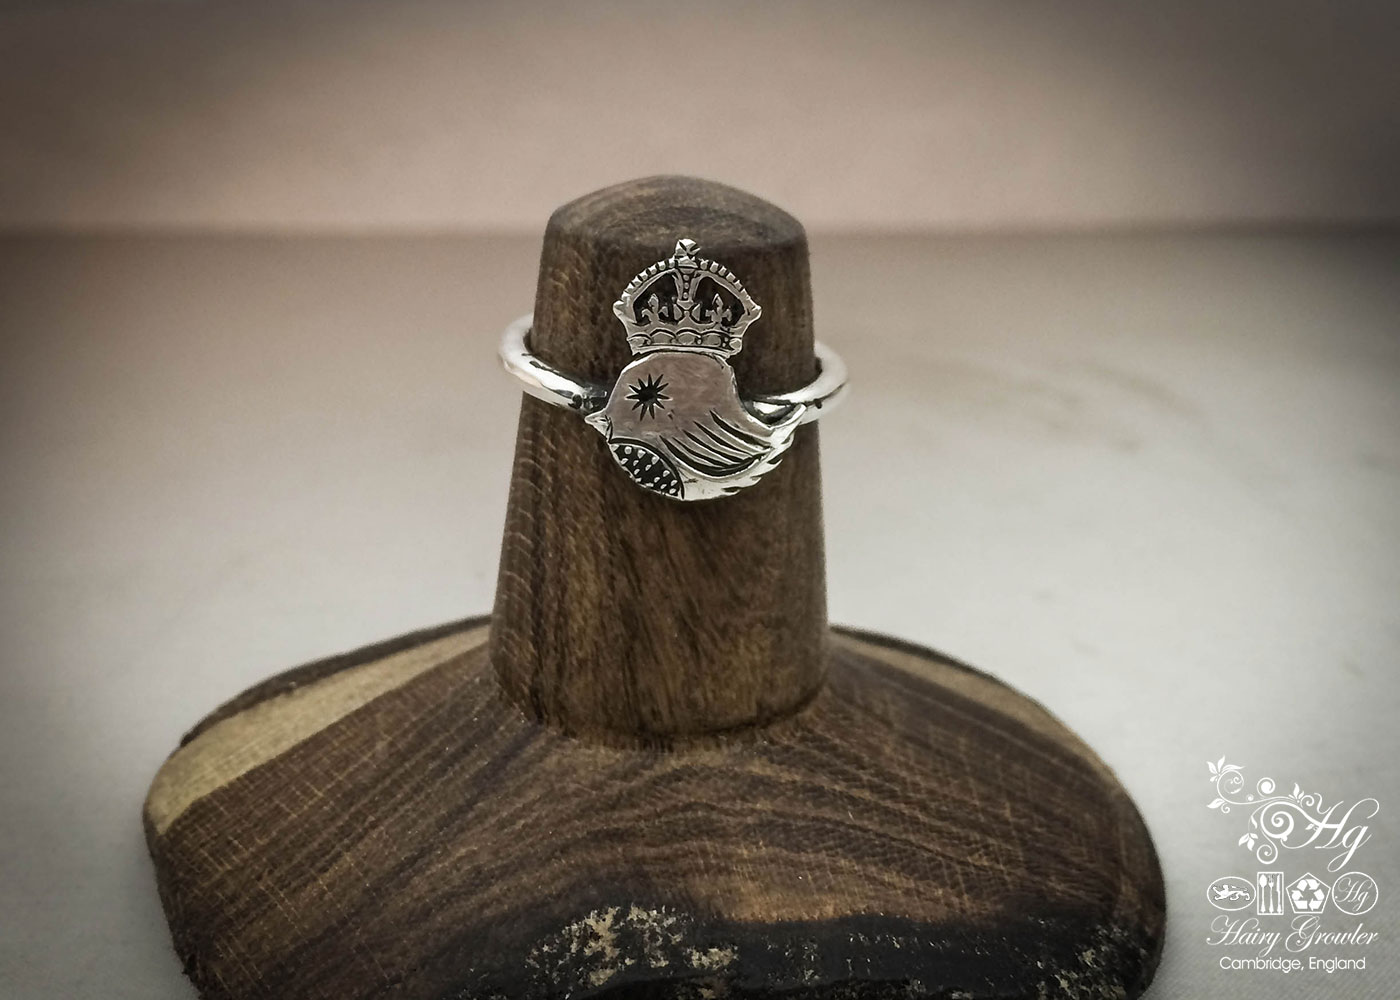 The 'teeny weeny bird queen' recycled silver threepence coin ring. Handmade and upcycled silver bird ring